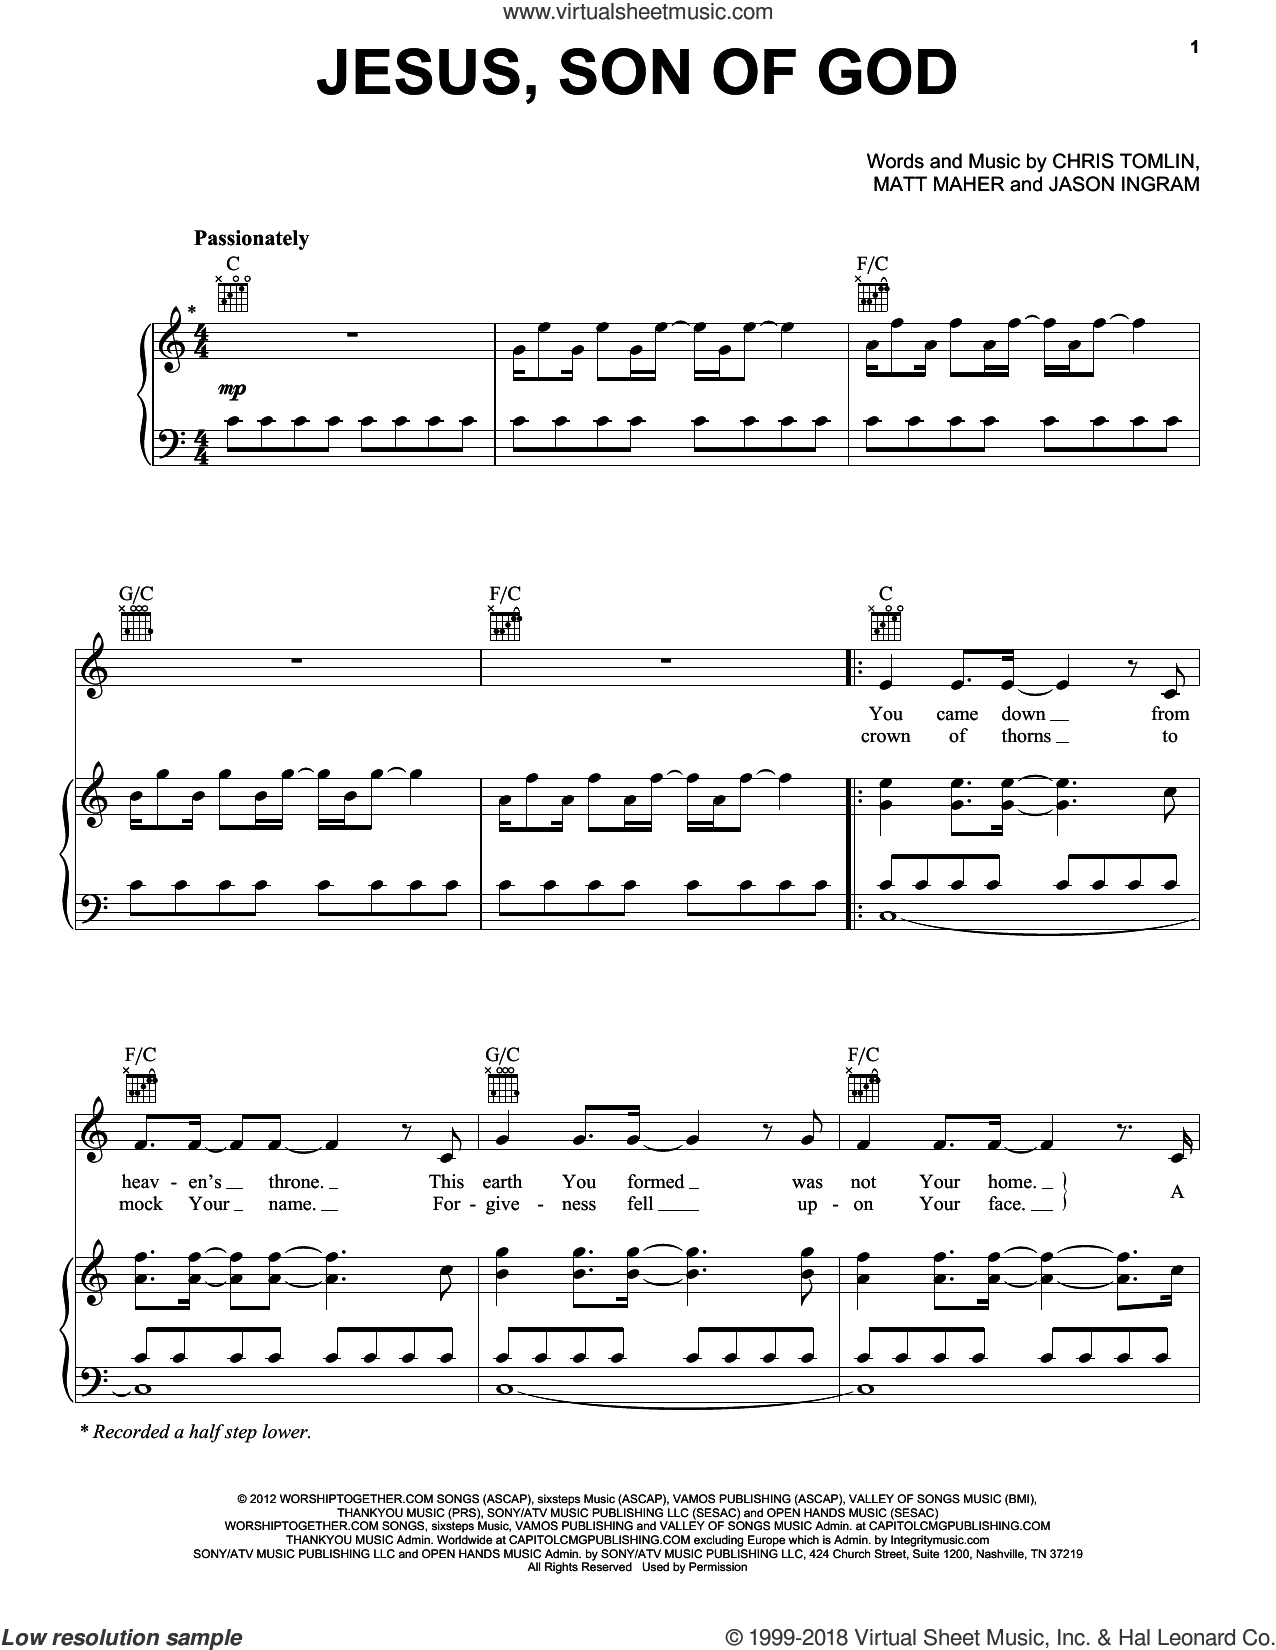 Jesus, Son Of God sheet music for voice, piano or guitar by Passion, Chris Tomlin, Jason Ingram and Matt Maher, intermediate skill level